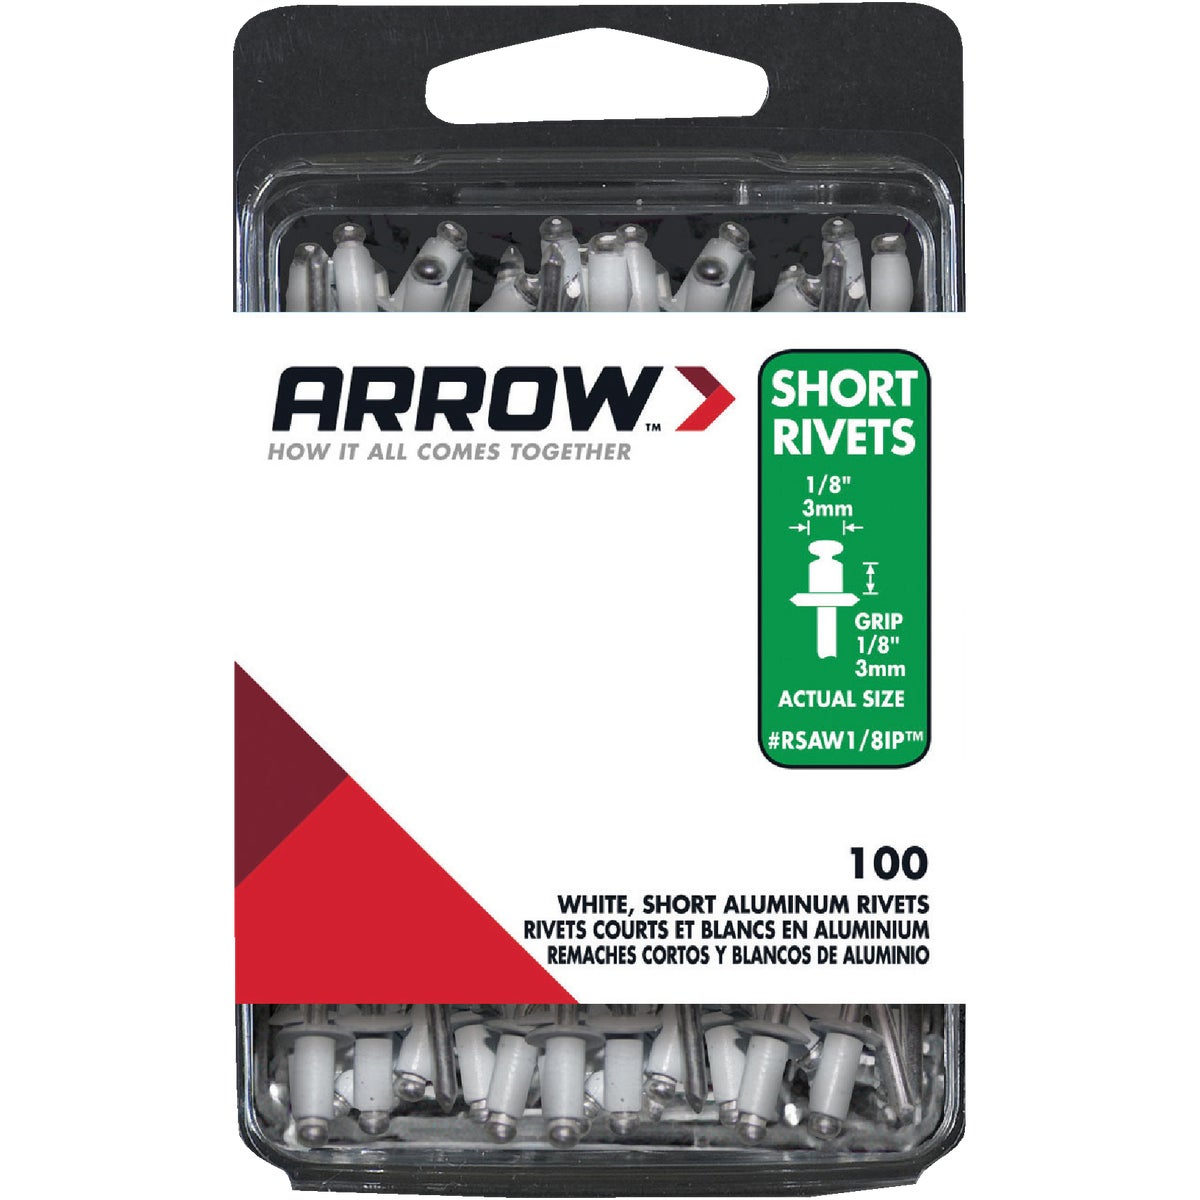 1/8X1/8 WHT ALUM RIVET - RSAW1/8IP by Arrow Fastener Co